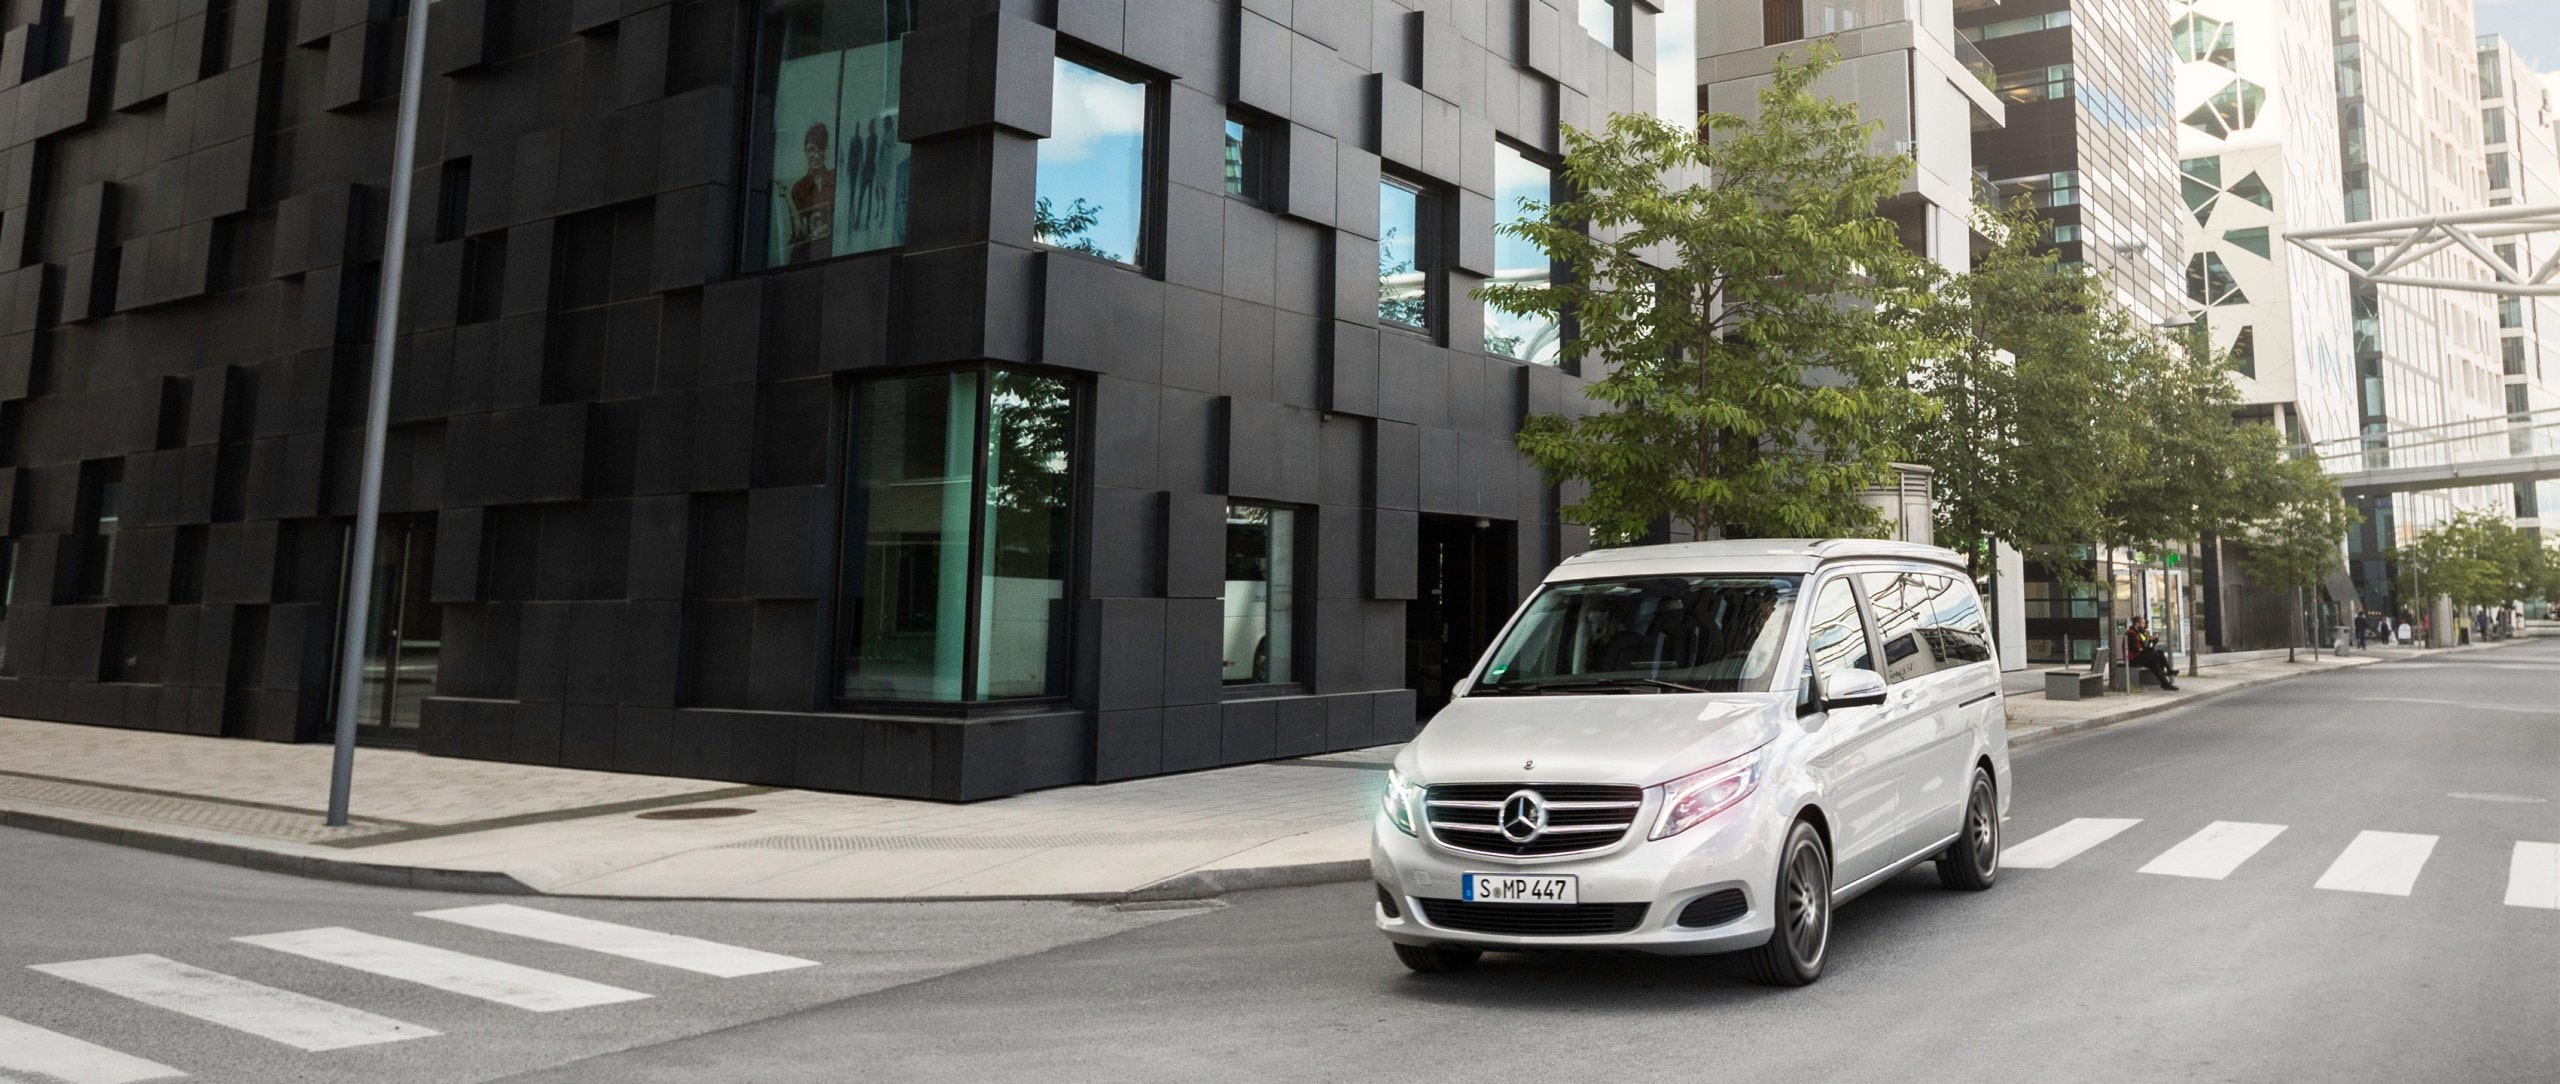 A Mercedes-Benz Marco Polo drives through Oslo's streets